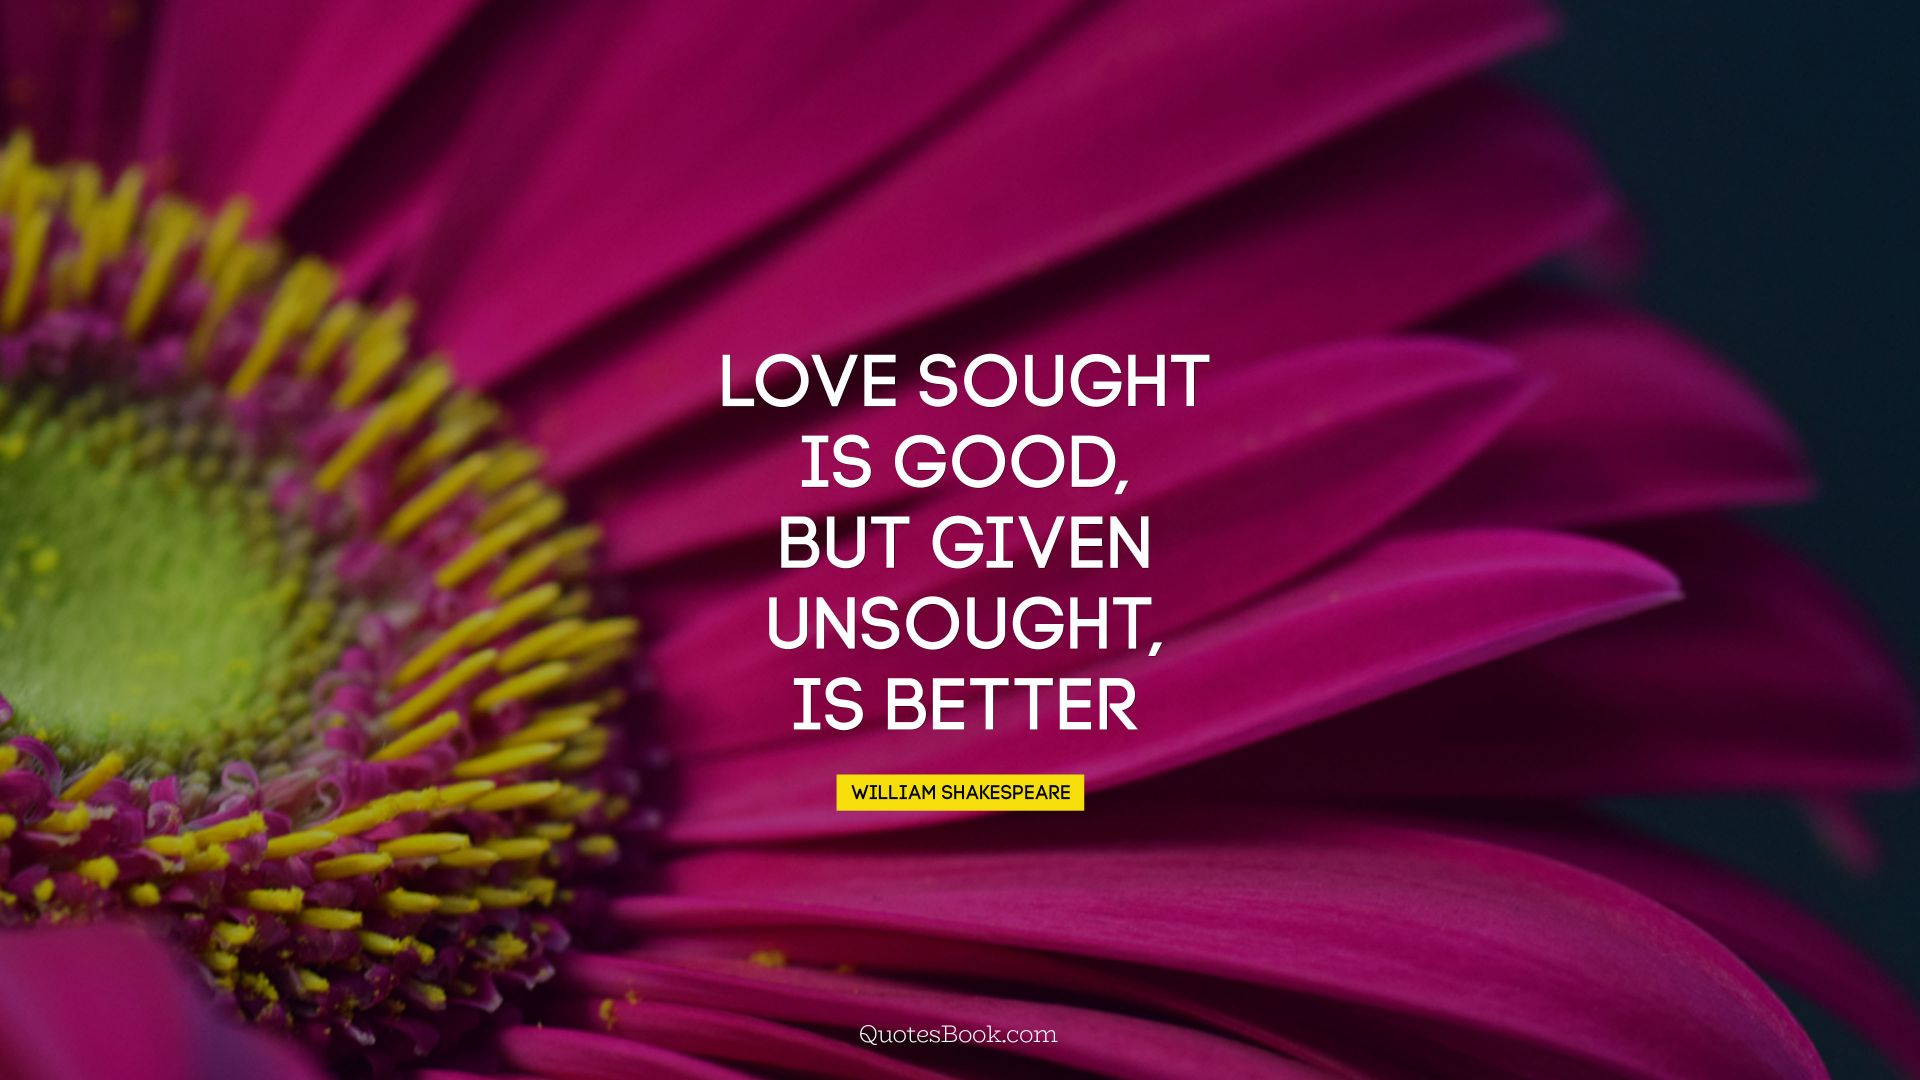 Love sought is good, but given unsought, is better. - Quote by William Shakespeare